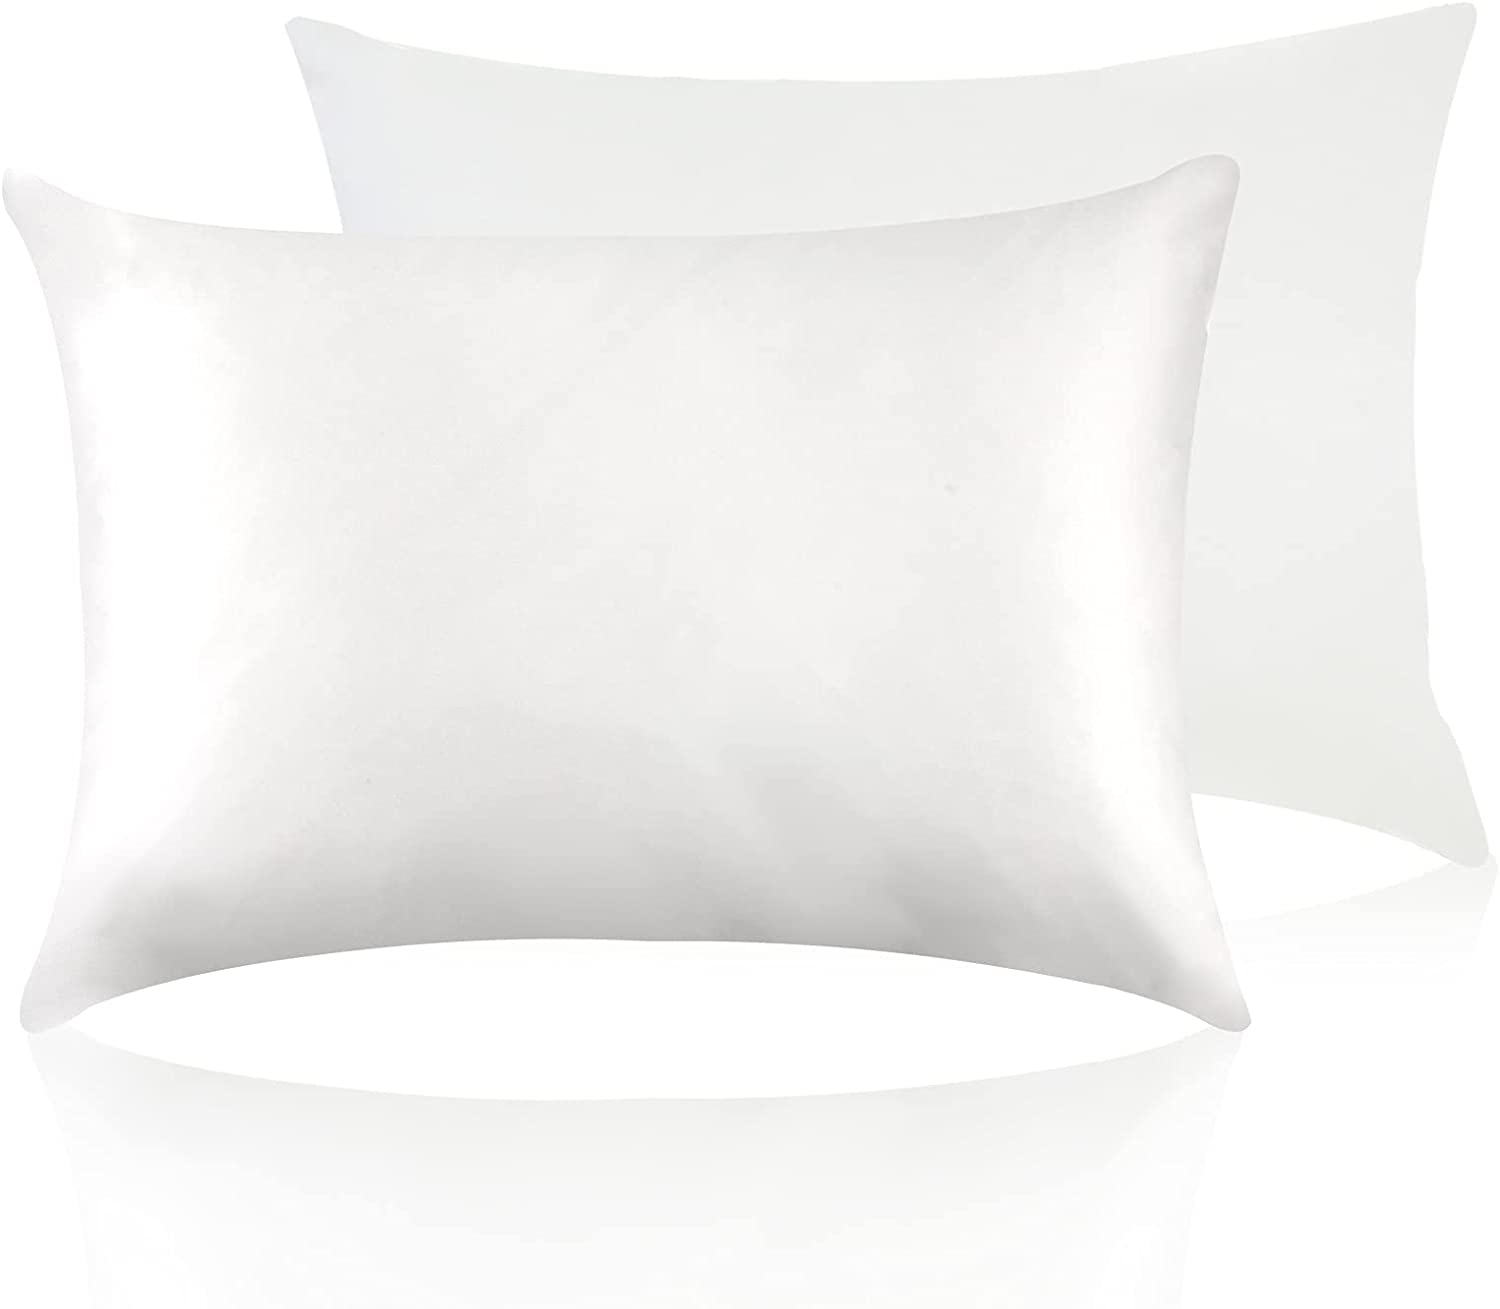 JZS Pure Mulberry Silk NEW Pillowcase with for Cotton Underside 35% OFF Hair